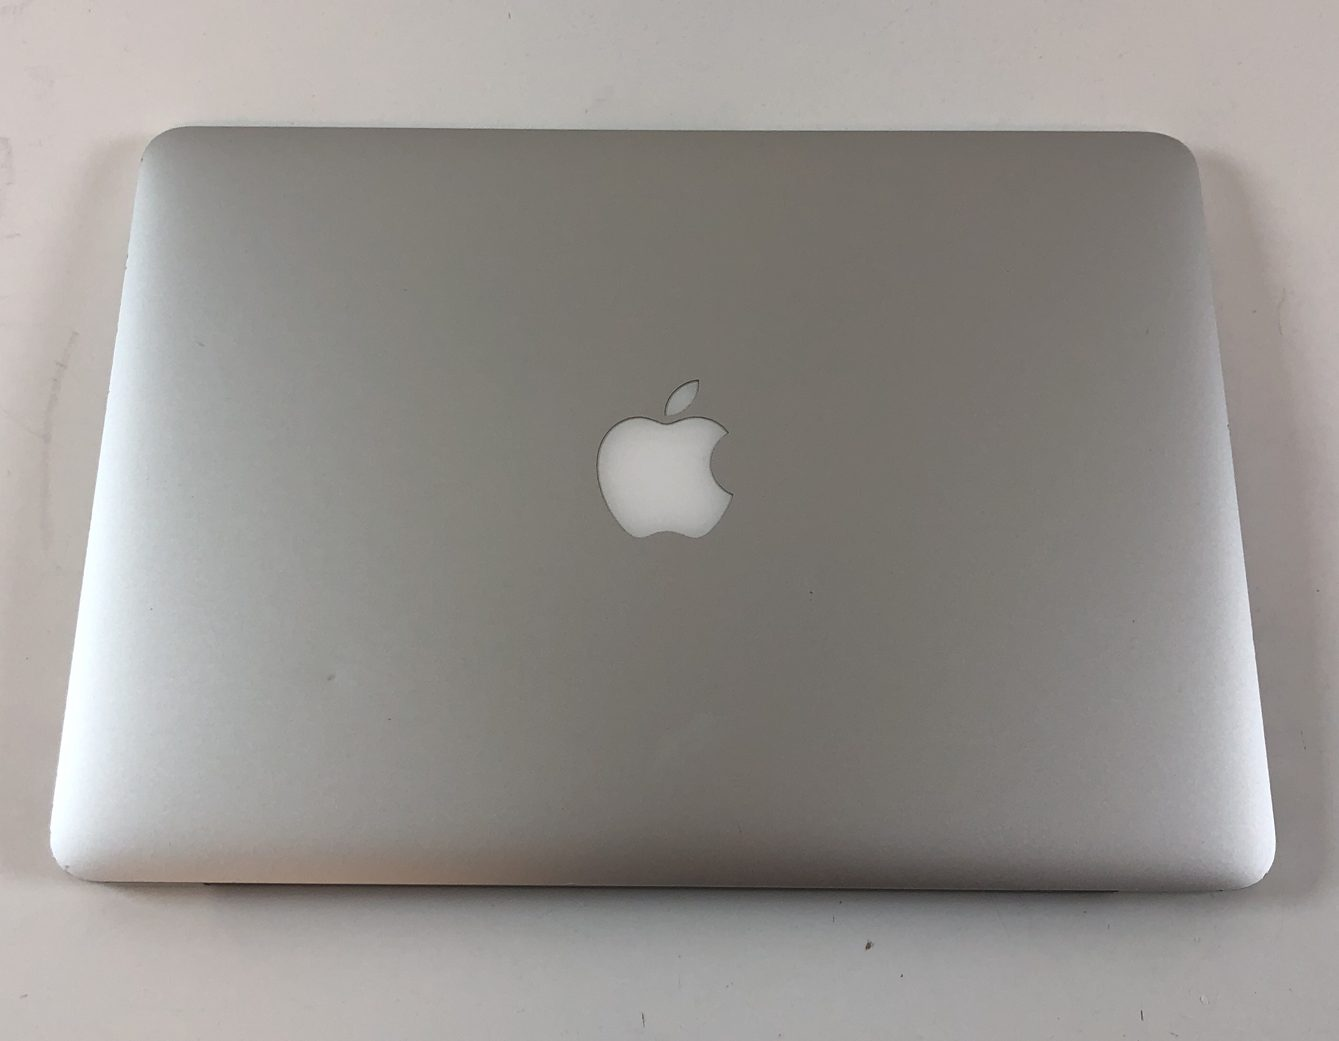 "MacBook Pro Retina 13"" Early 2015 (Intel Core i5 2.7 GHz 8 GB RAM 128 GB SSD), Intel Core i5 2.7 GHz, 8 GB RAM, 128 GB SSD, bild 2"